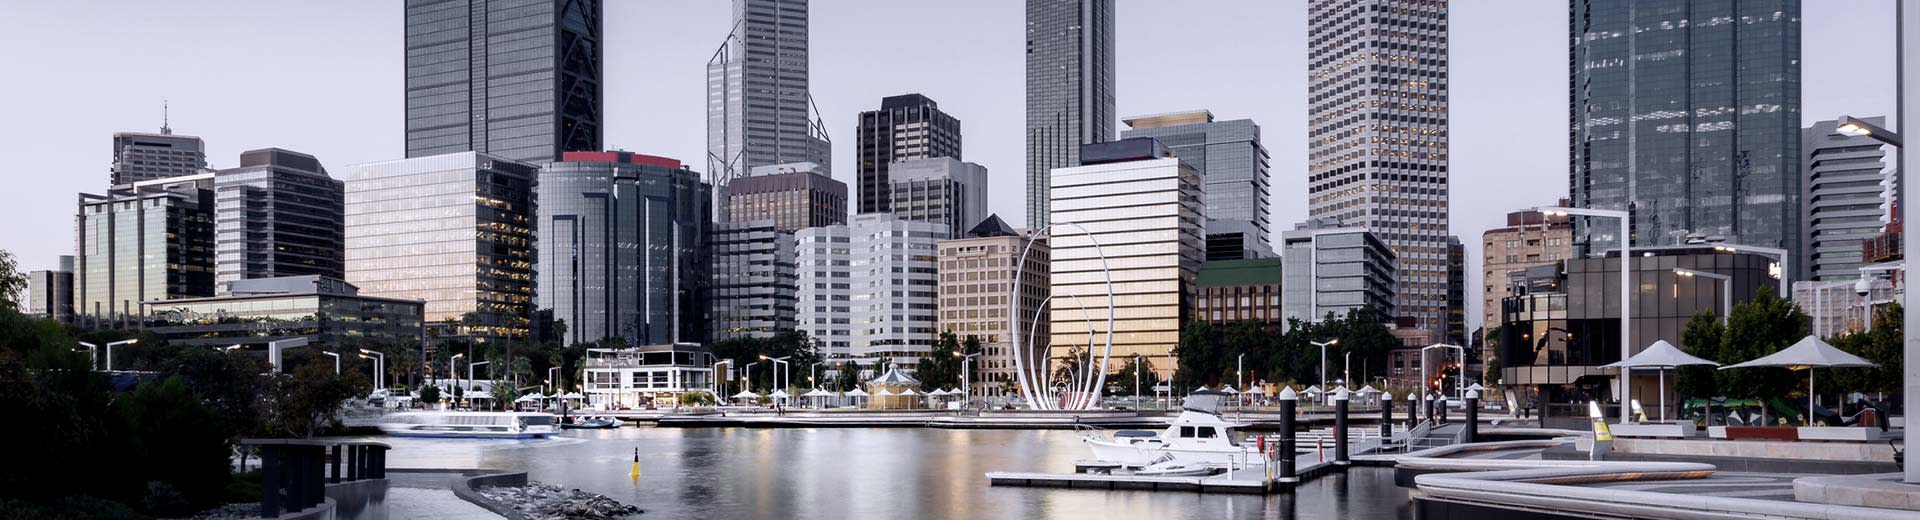 A view of the harbor of Perth, with some generic looking skyscrapers in the background